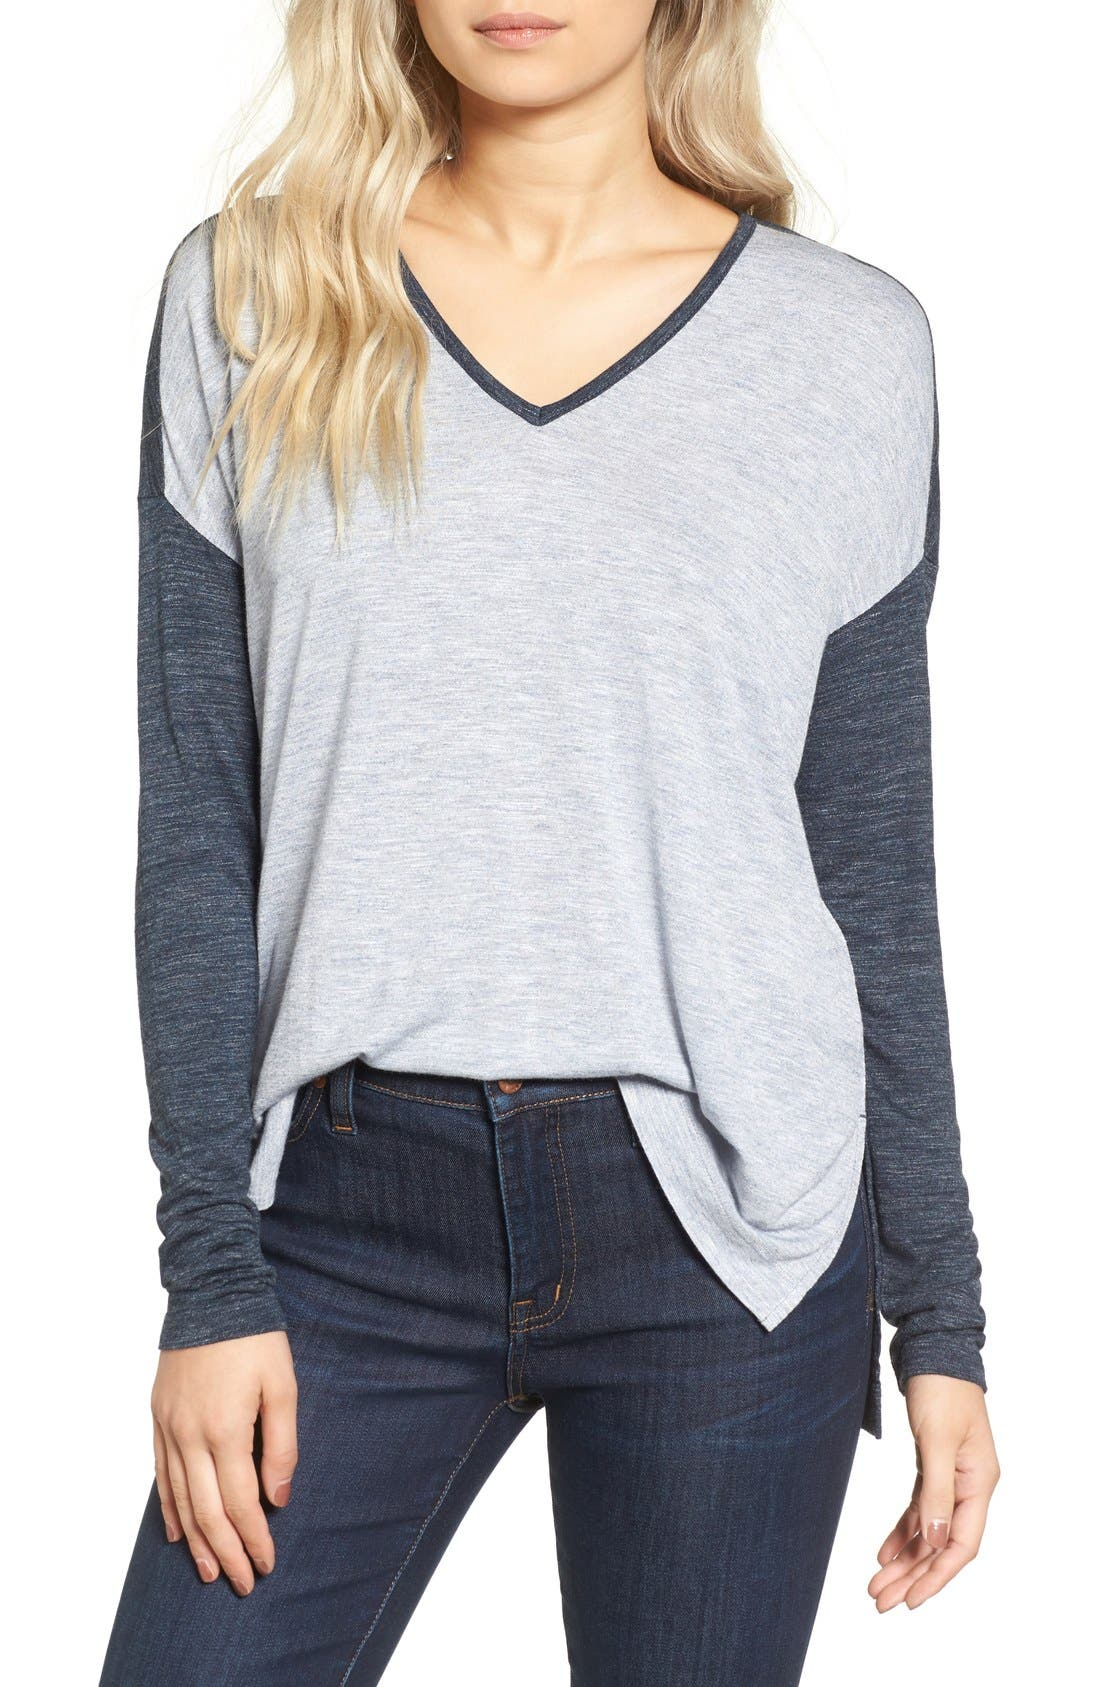 Main Image - Madewell Anthem Lightweight Colorblock Tee